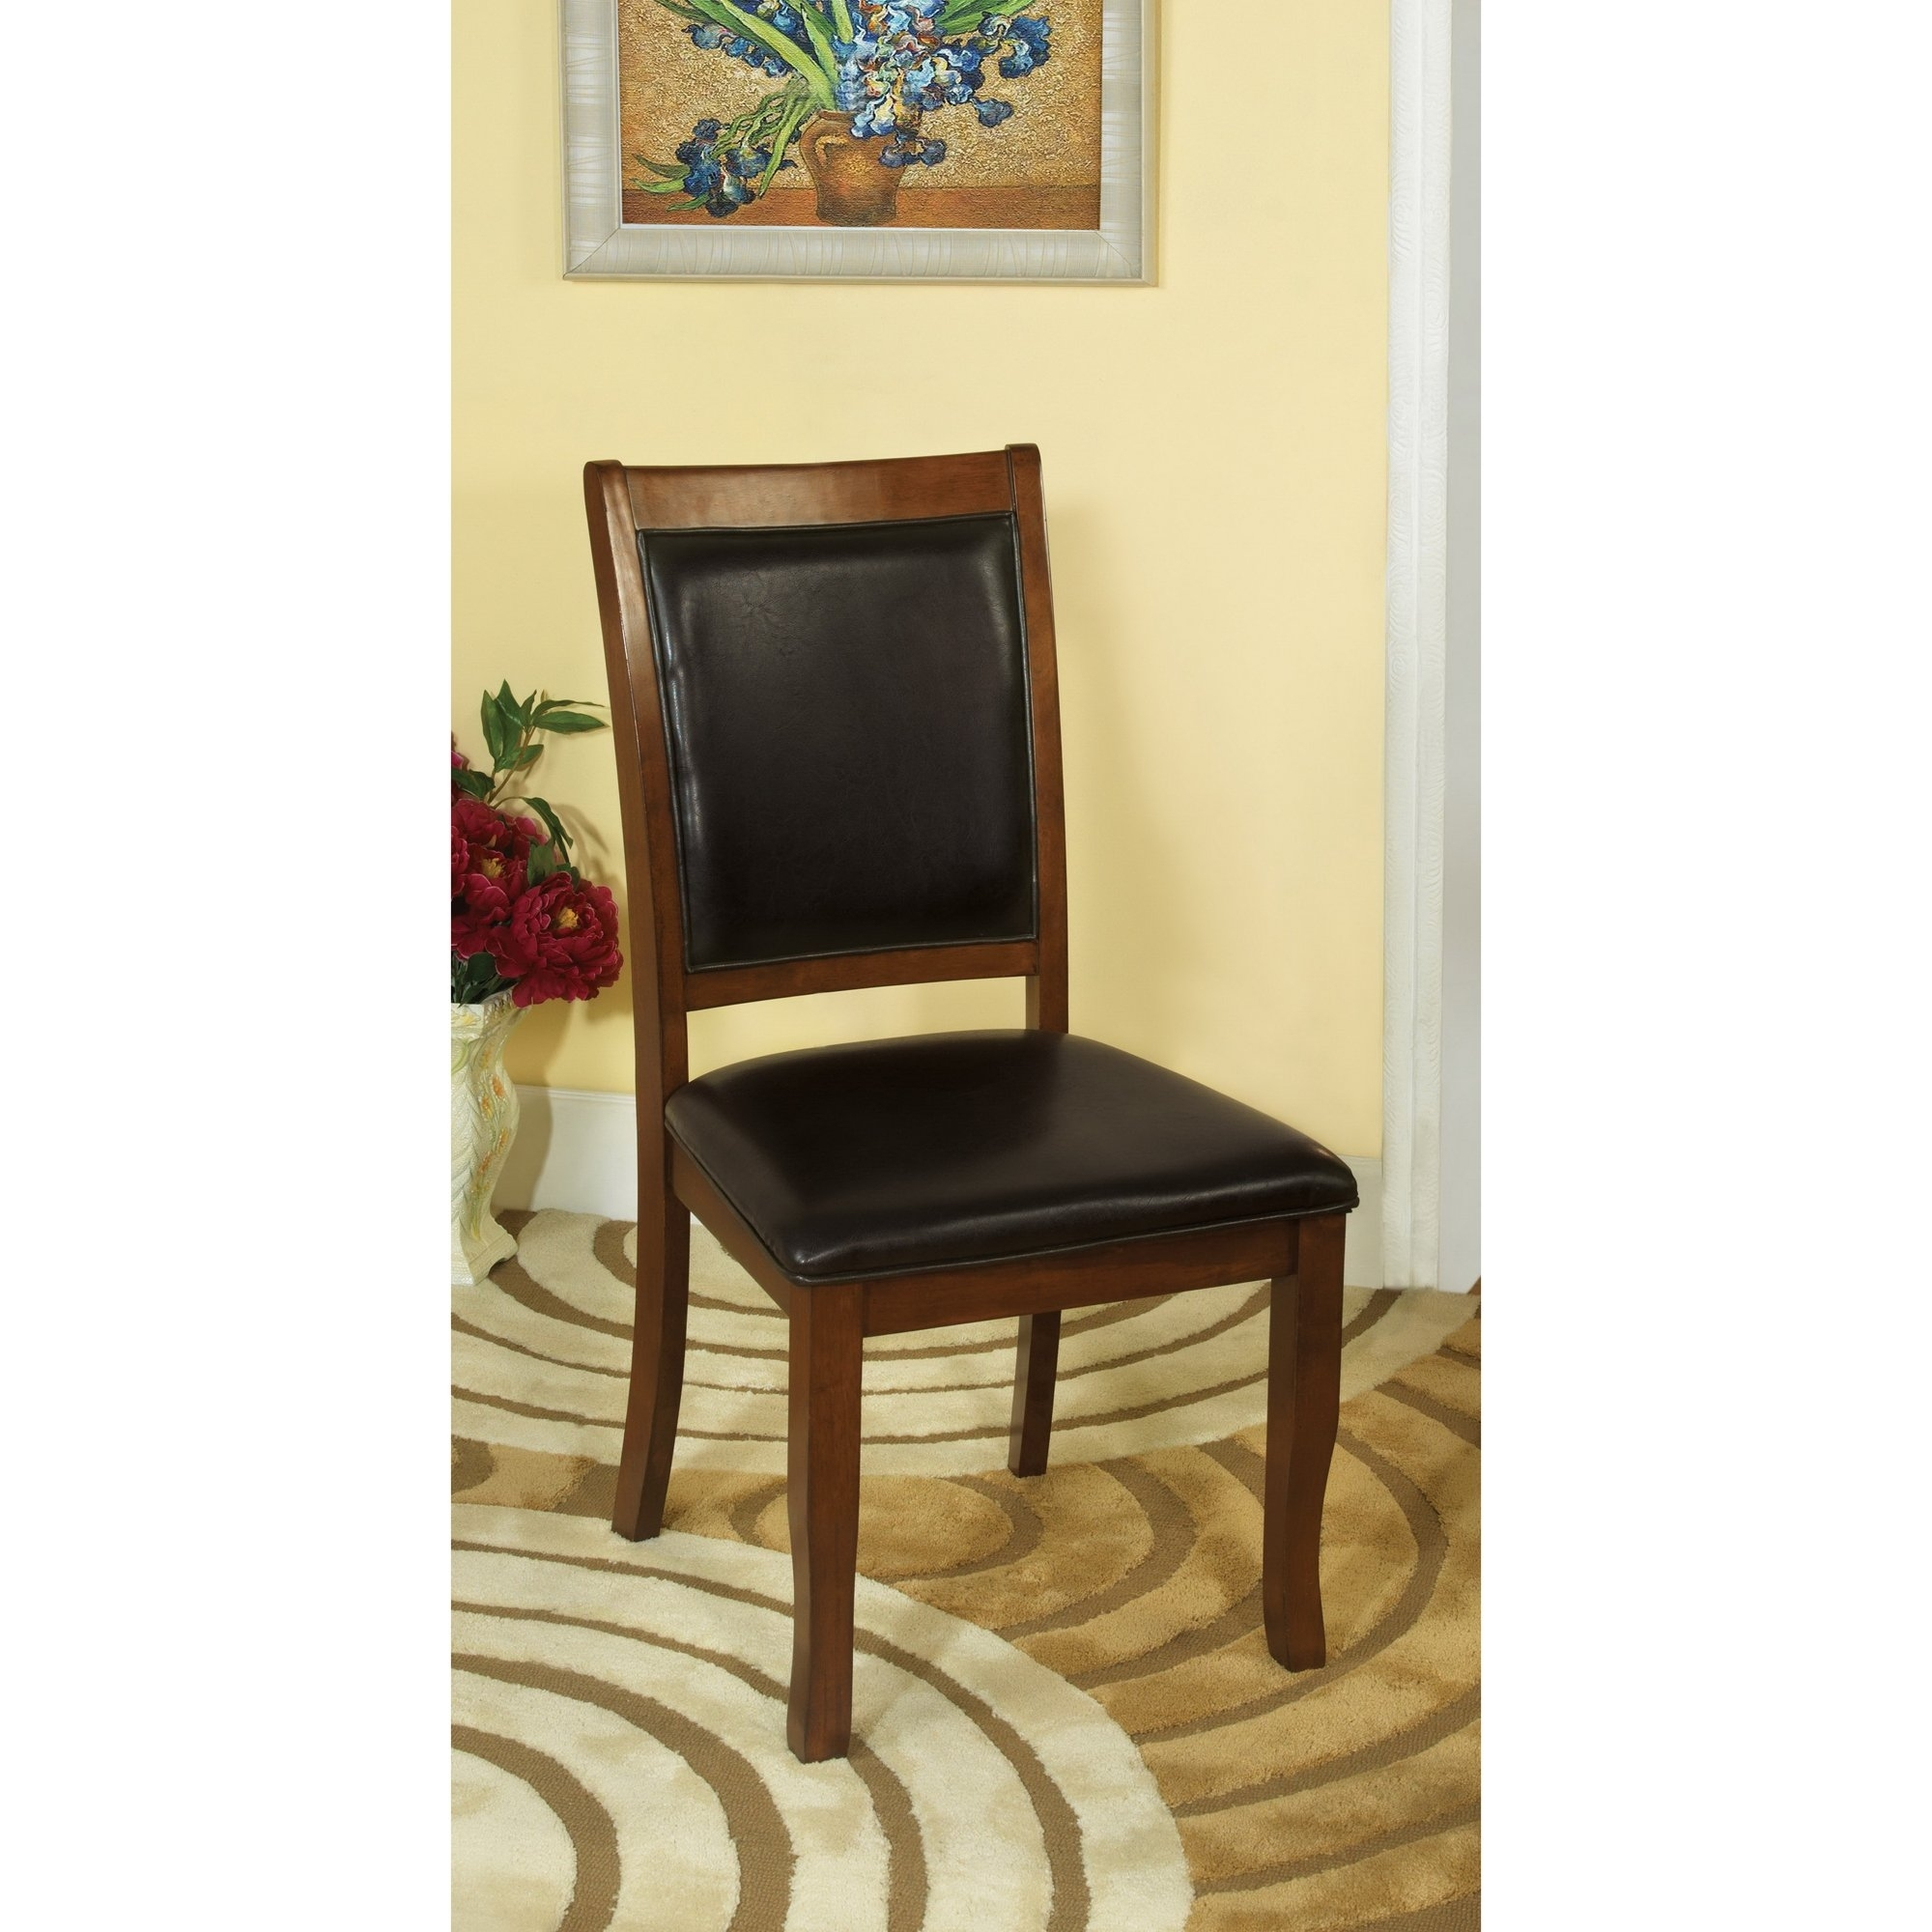 Shop Furniture Of America Kristen 5 Piece Brown Cherry Dining Set Intended For Recent Kirsten 5 Piece Dining Sets (Image 19 of 20)